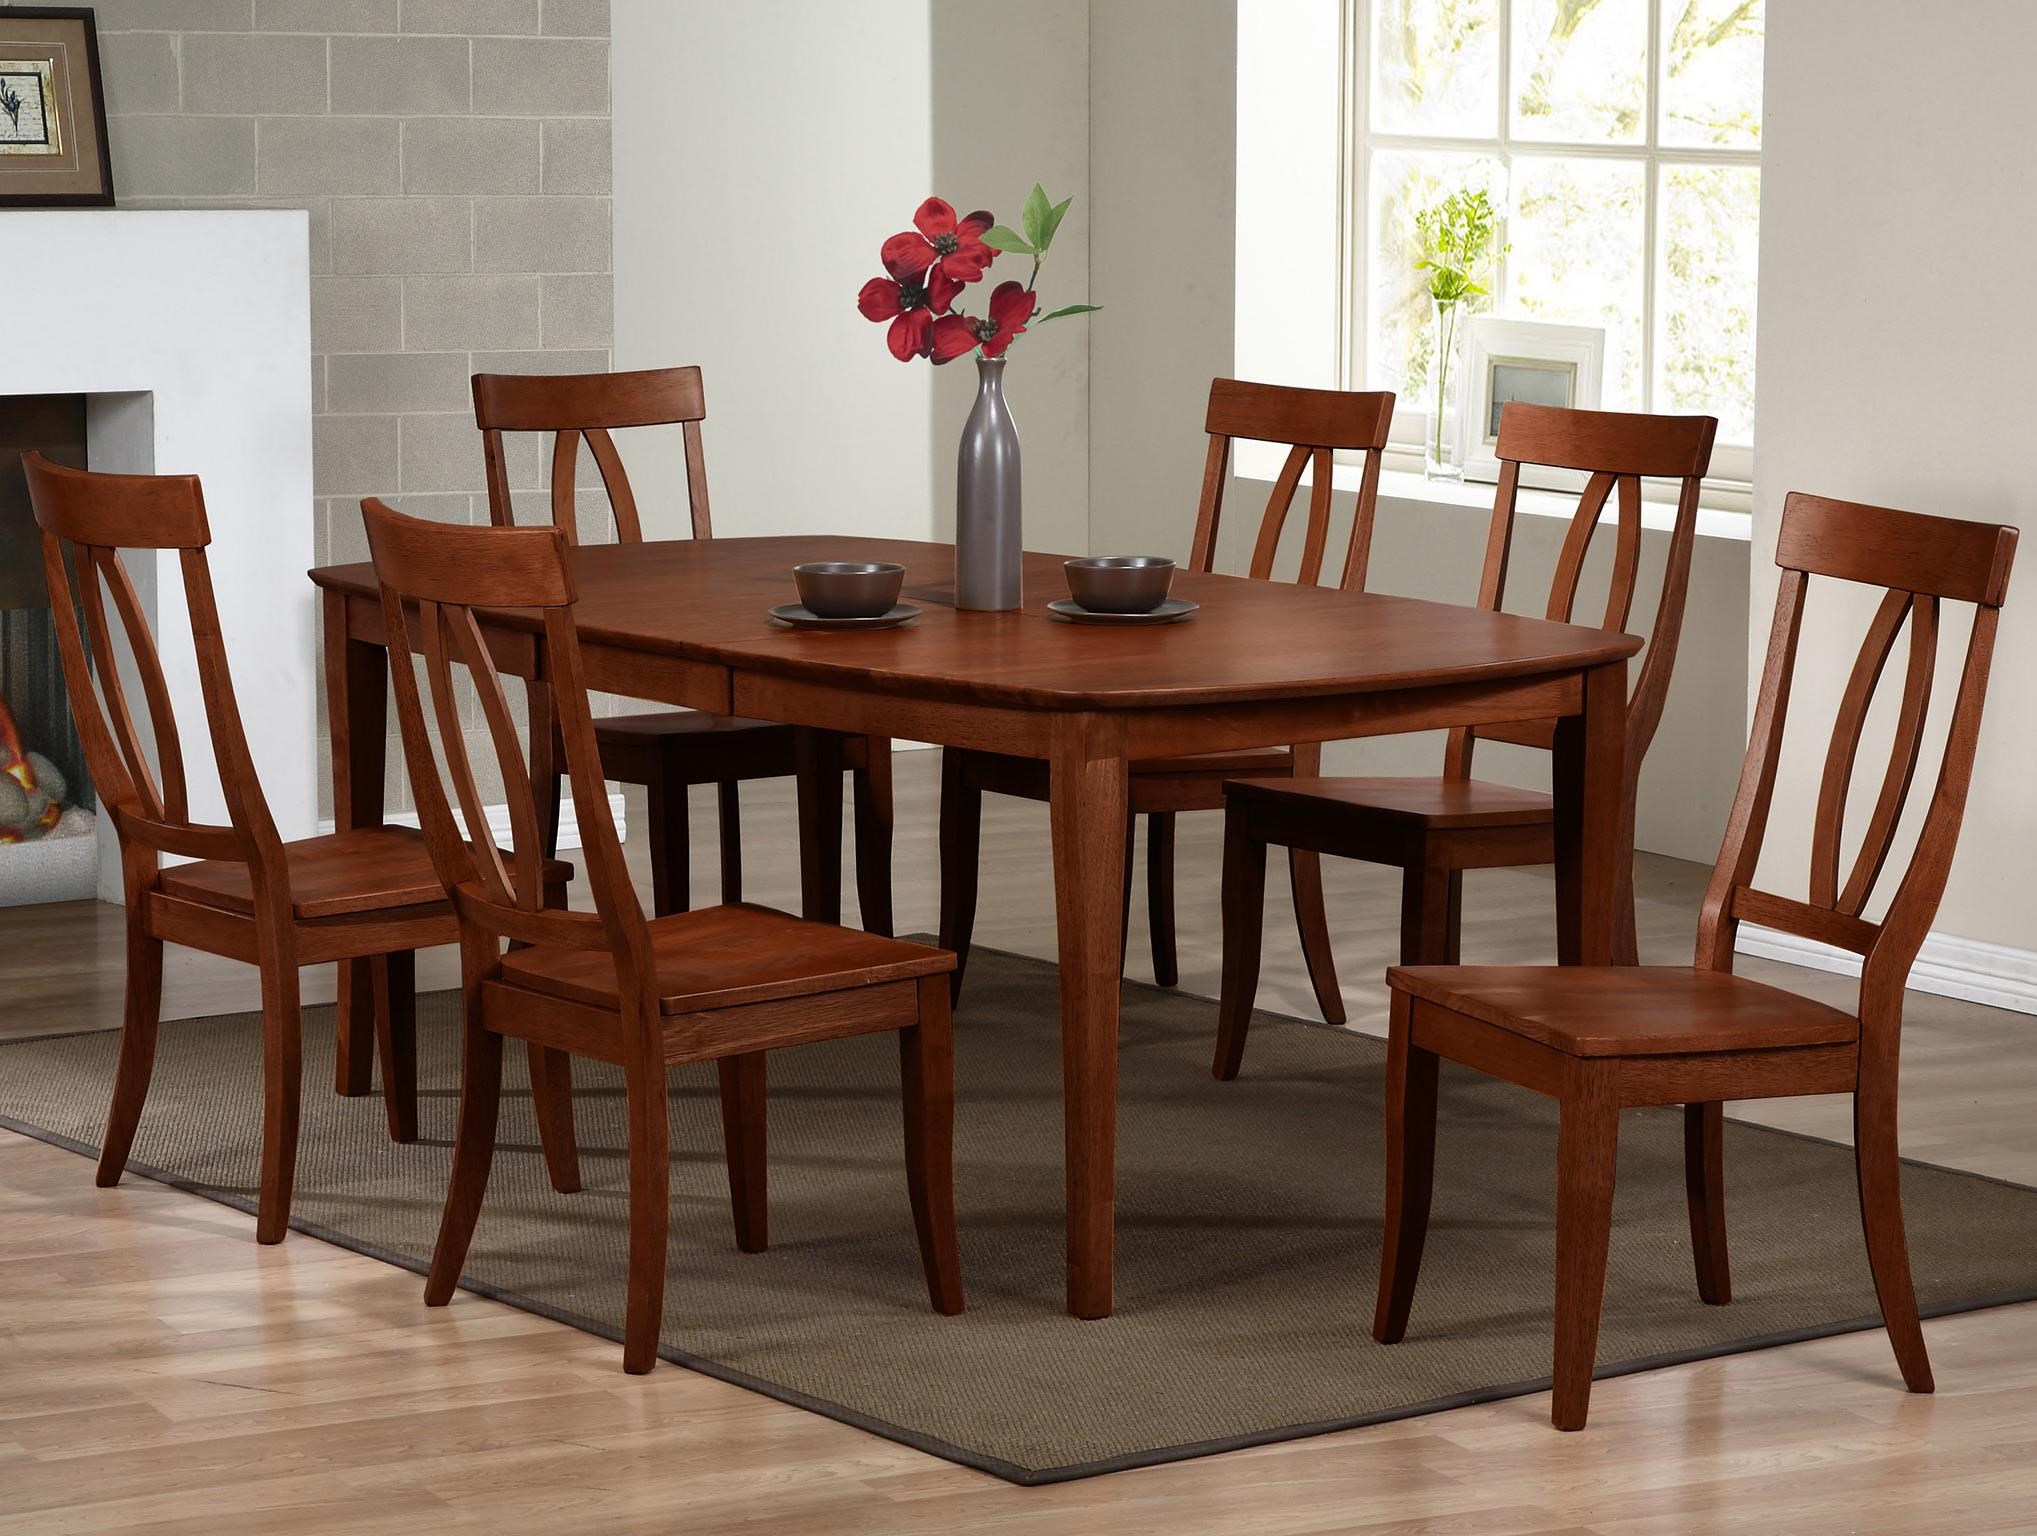 Superbe Winners Only Santa Barbara SBF 7 Piece Dining Set With Keyhole Back Chairs